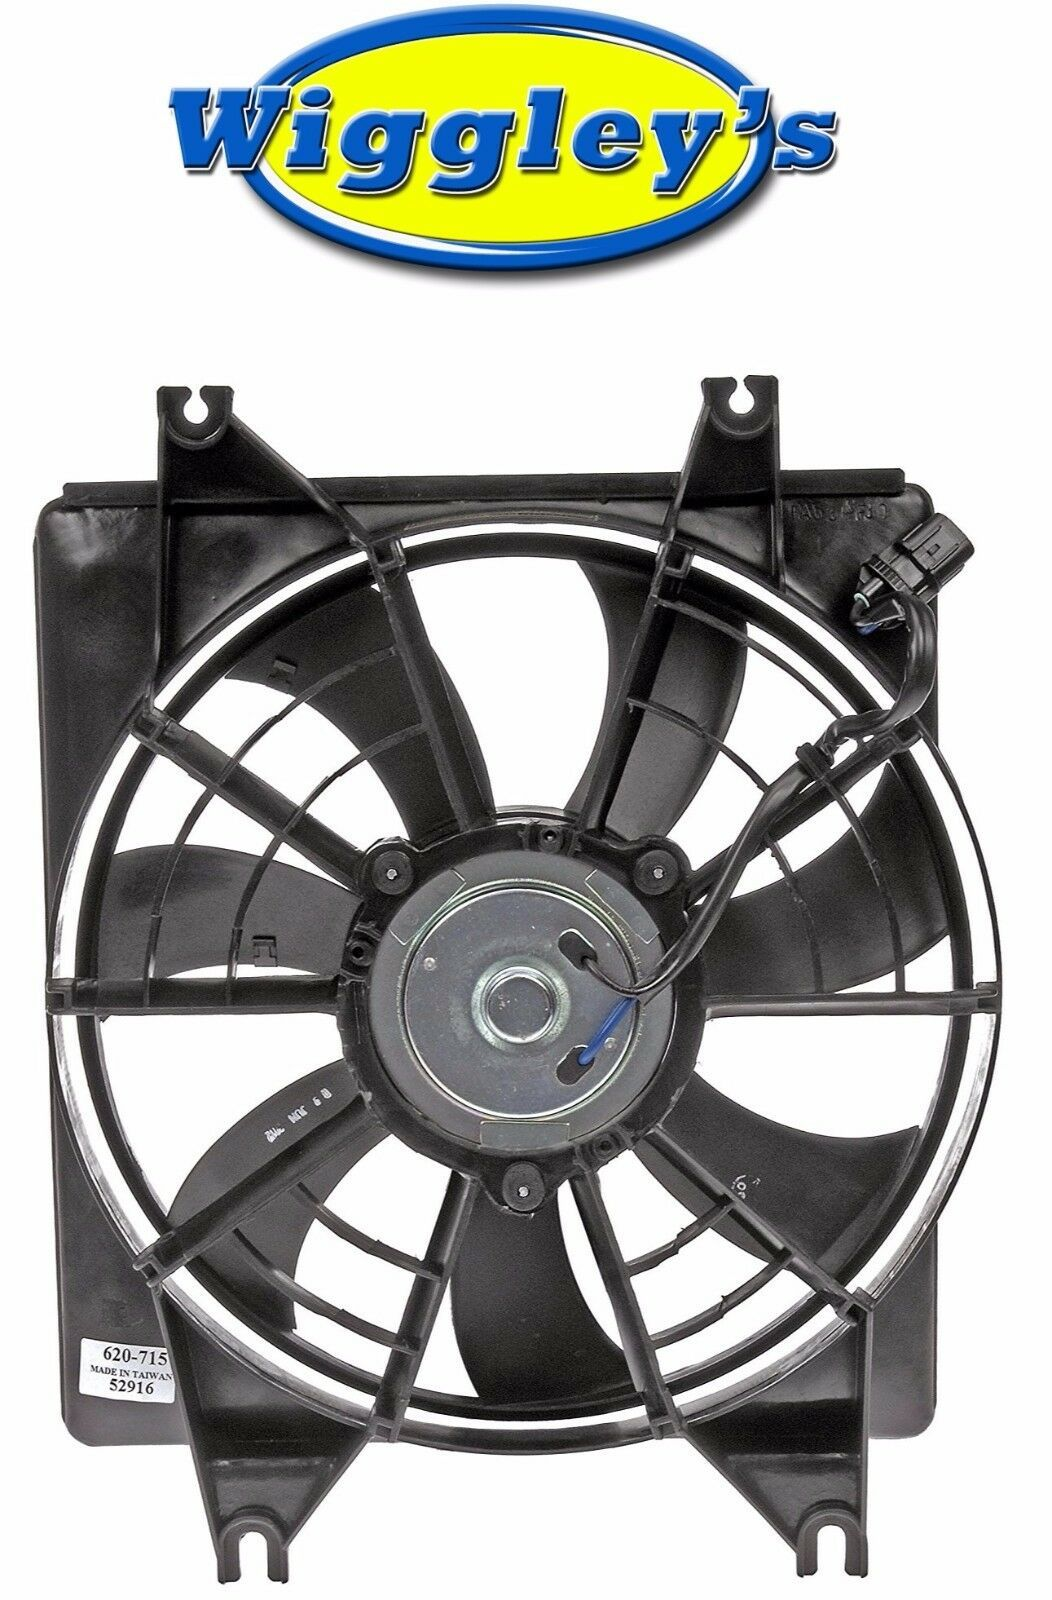 A/C COOLING FAN ASSEMBLY HY3113101 FOR 95 96 97 98 99 HYUNDAI ACCENT 1.5L-L4